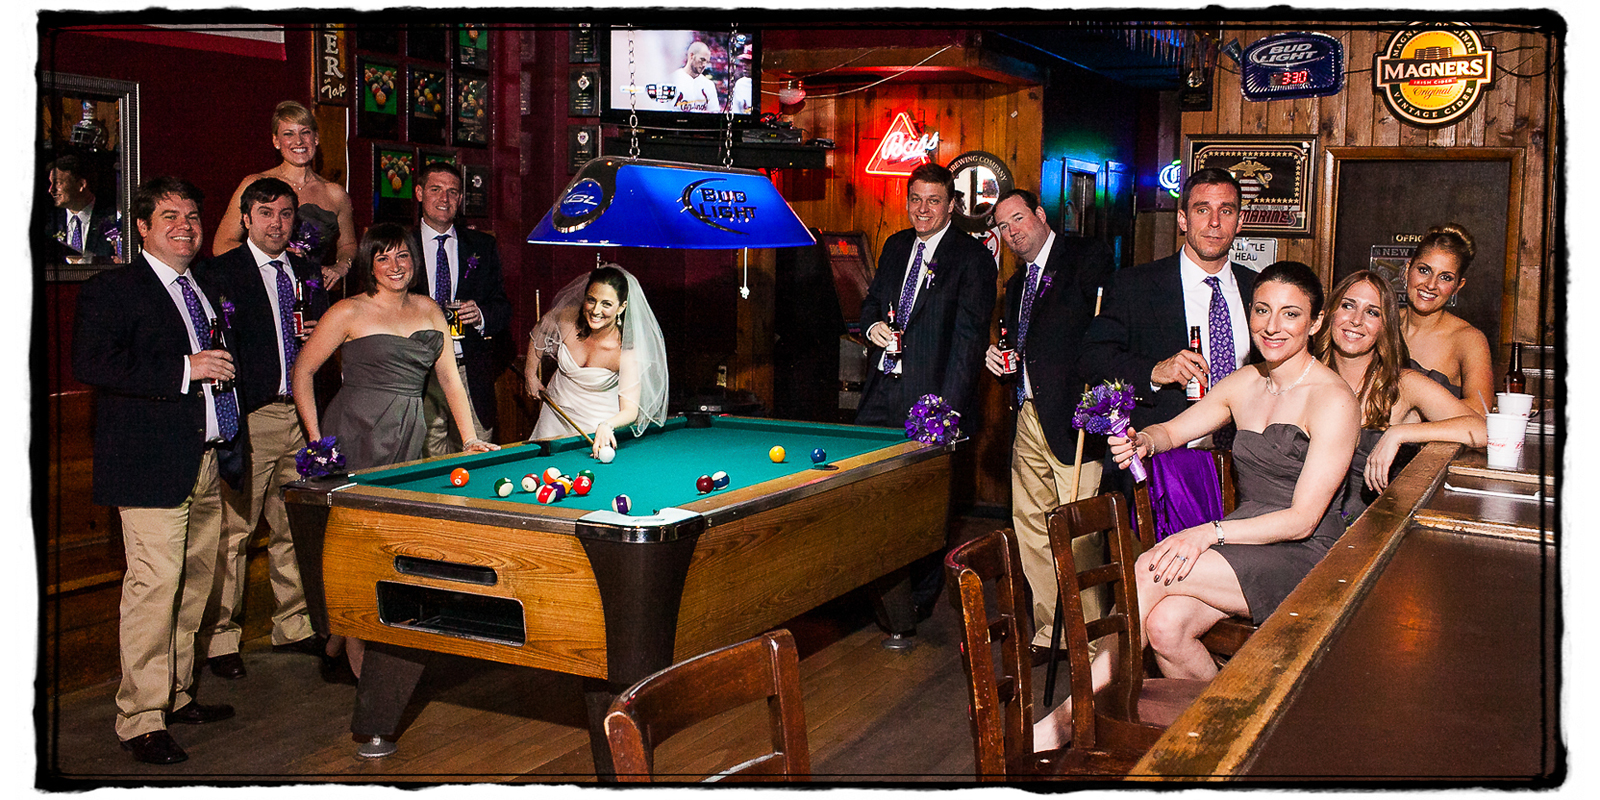 Allison & Peter wanted a shot with their bridal party in their favorite local watering hole in the West Village, NYC.